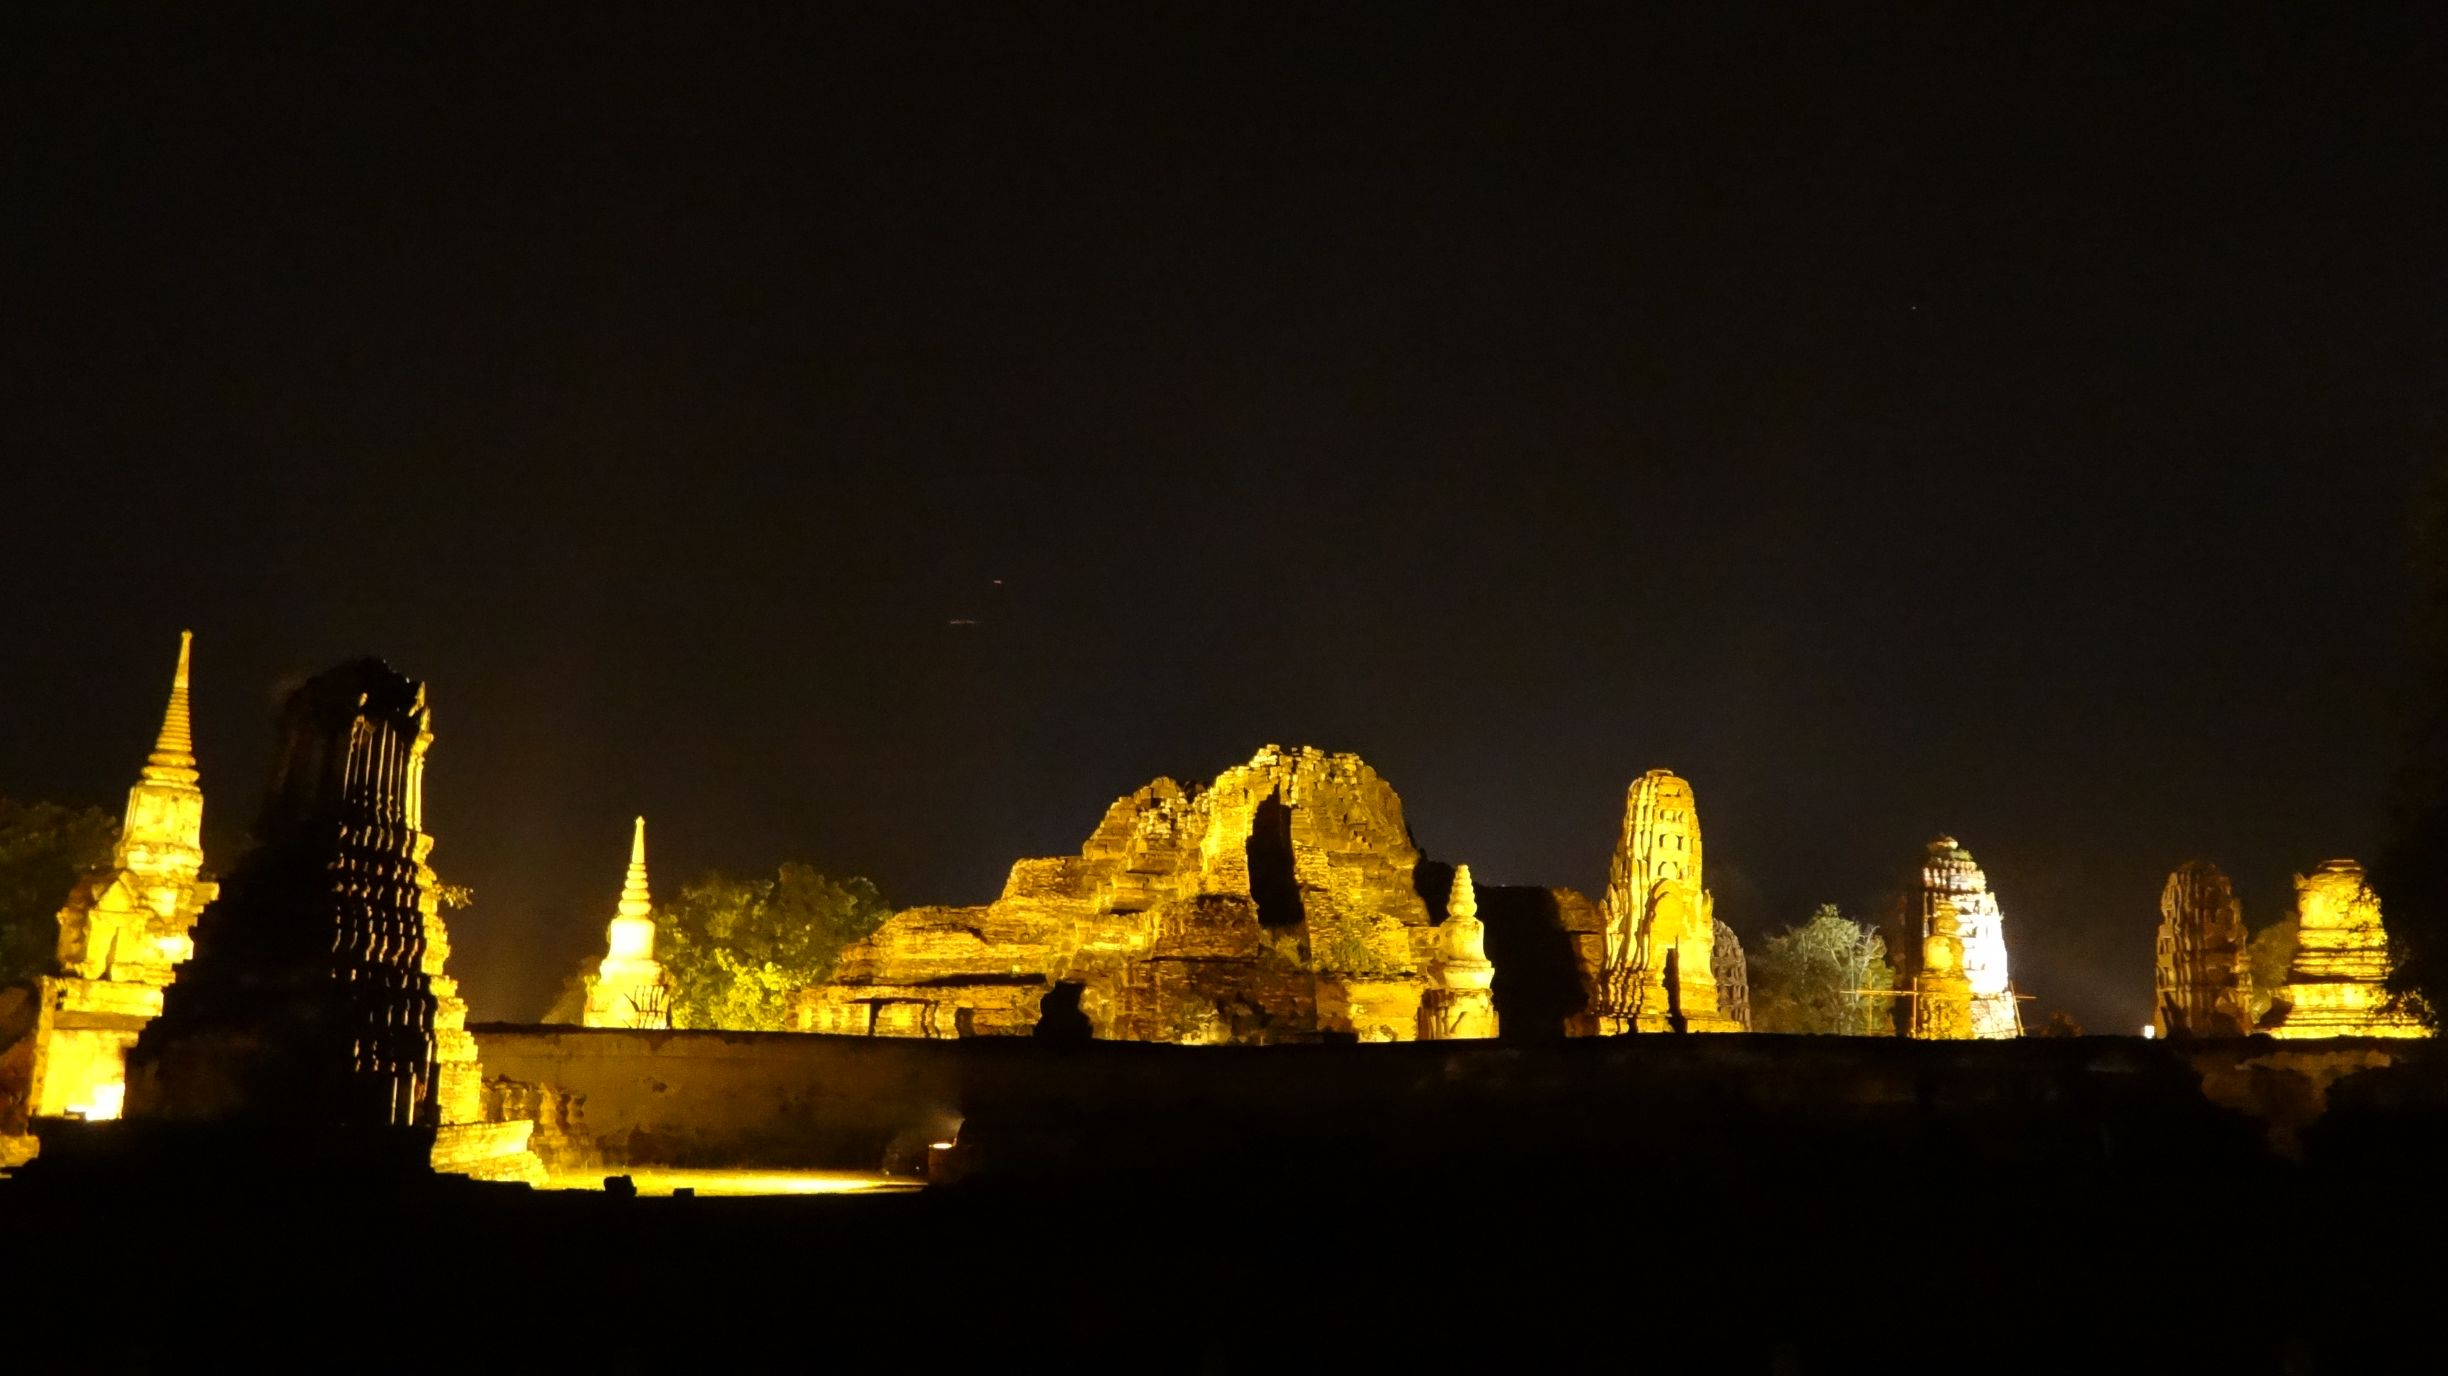 some ruins look even more impressive by night